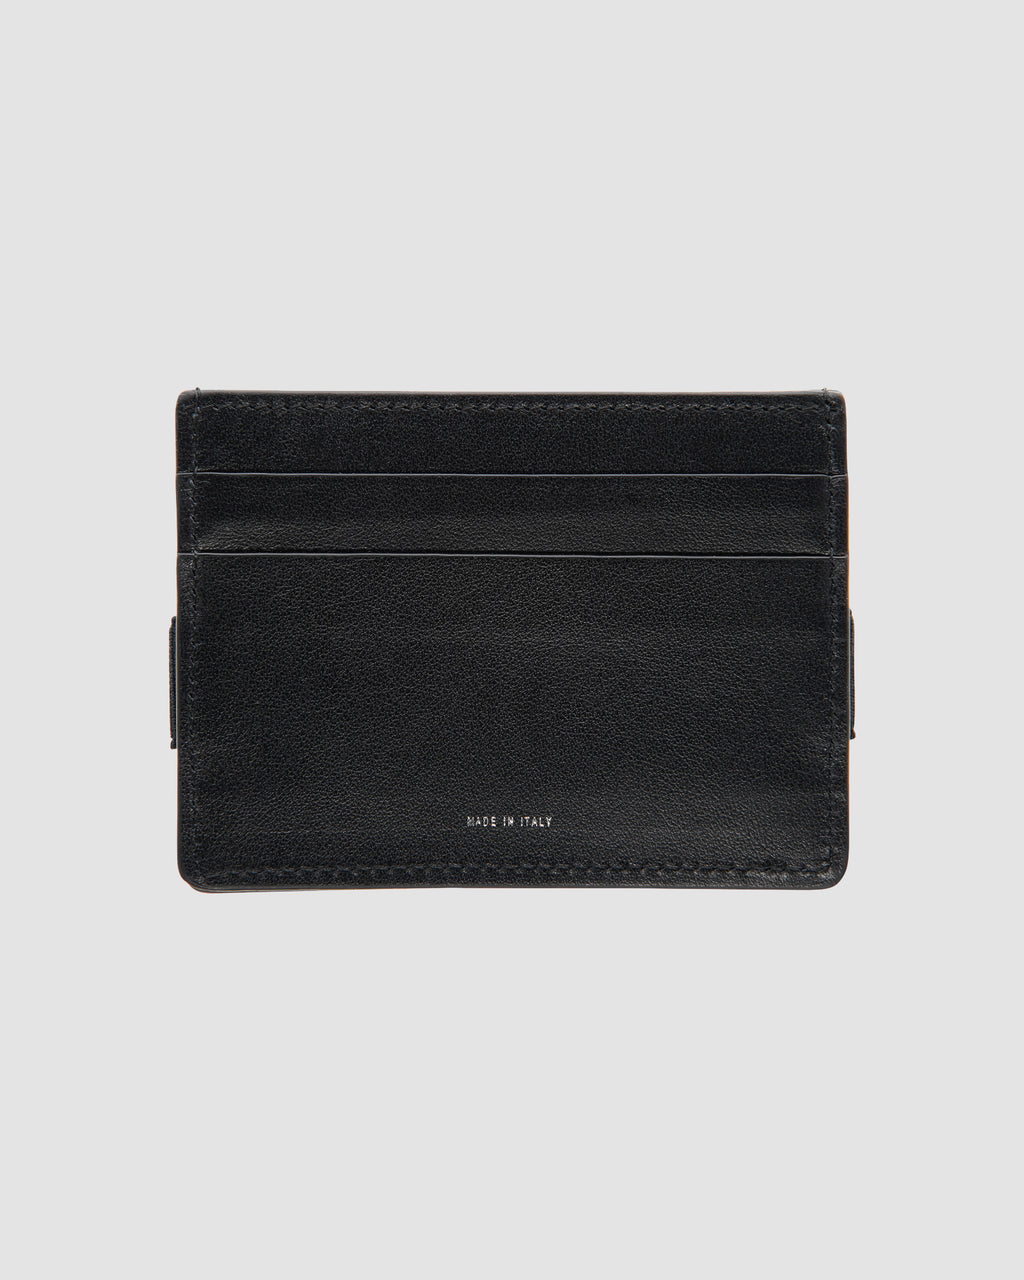 1017 ALYX 9SM | RYAN CARD HOLDER | Wallet | Accessories, Black, CO, Man, Woman